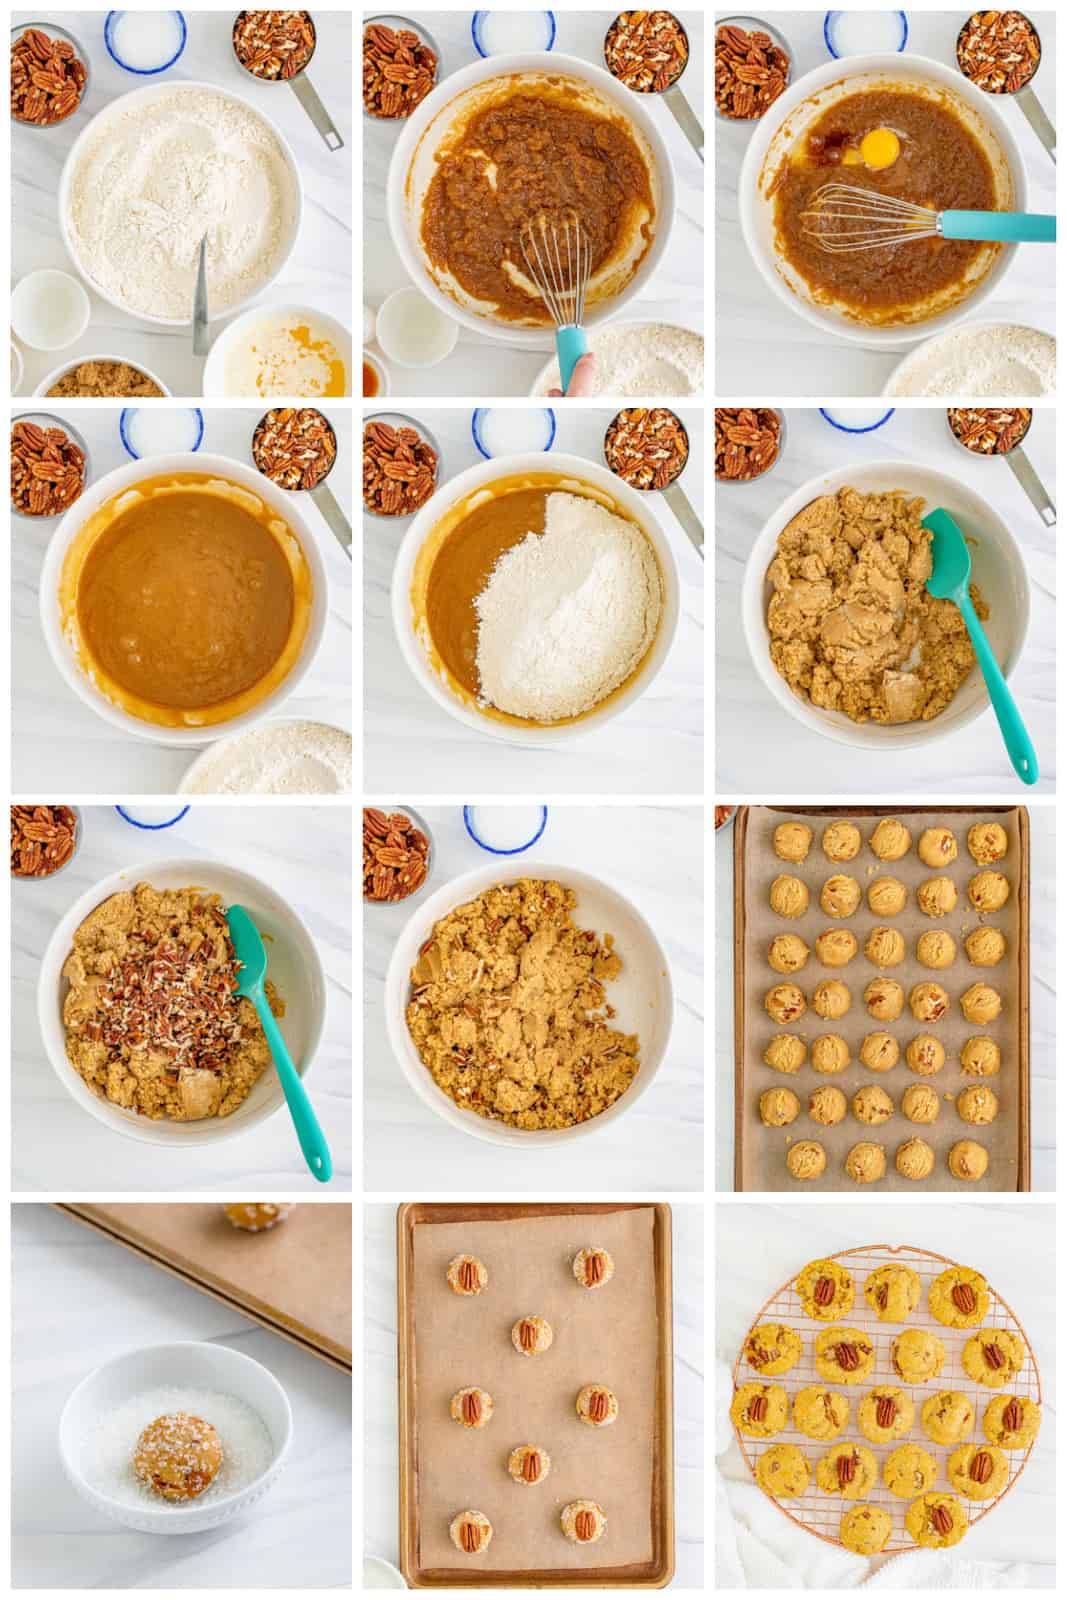 Step by step photos on how to make Butter Pecan Cookies.